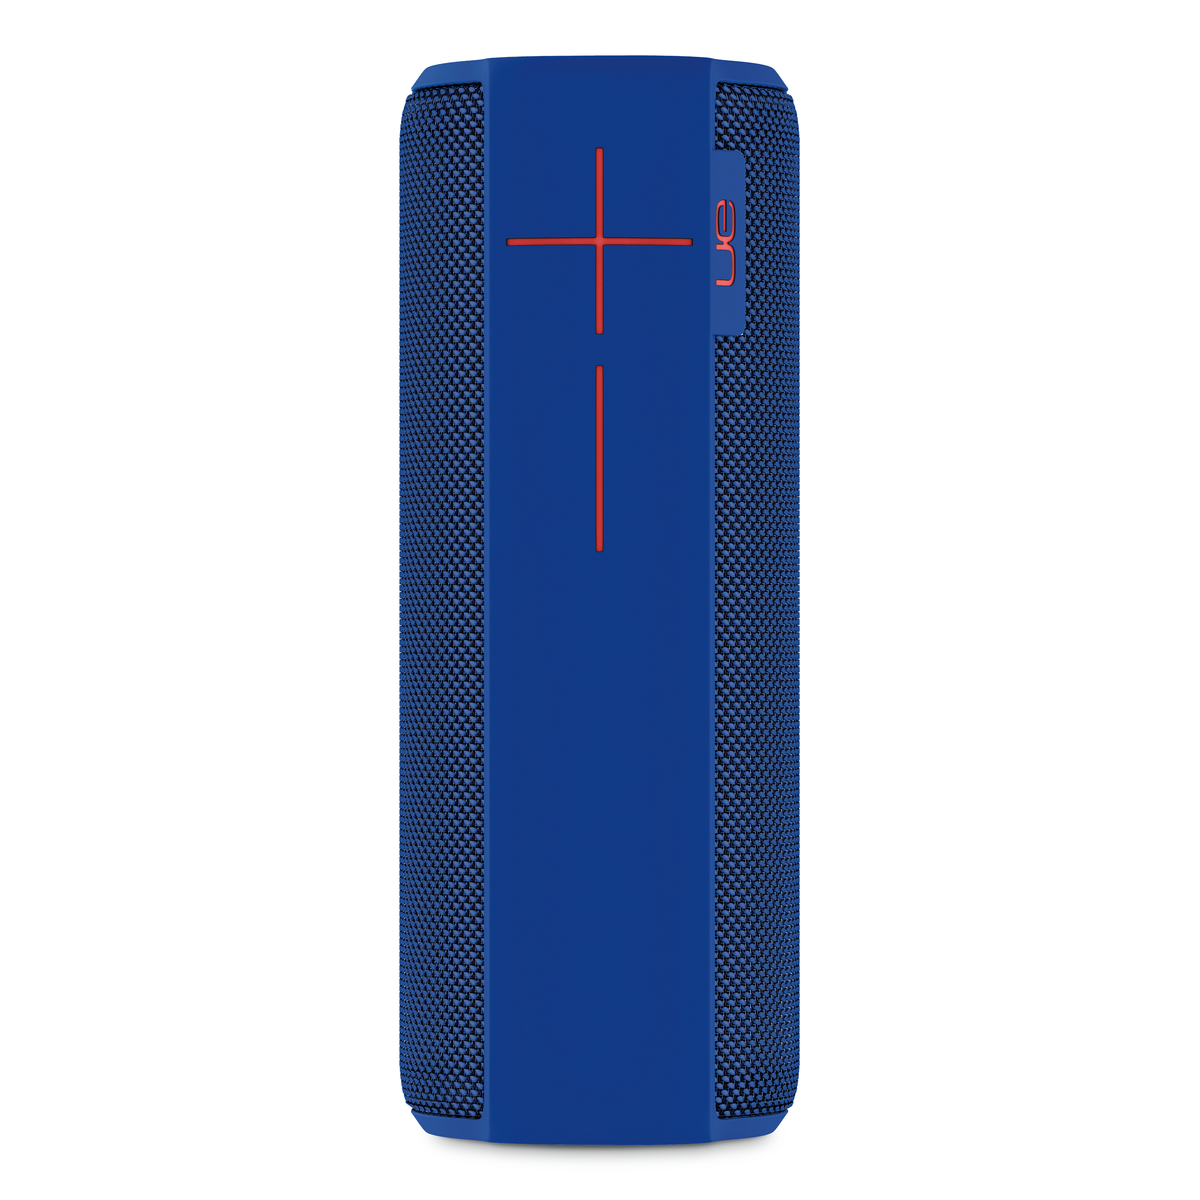 Ultimate ears announces next generation ue megaboom for Housse ue megaboom